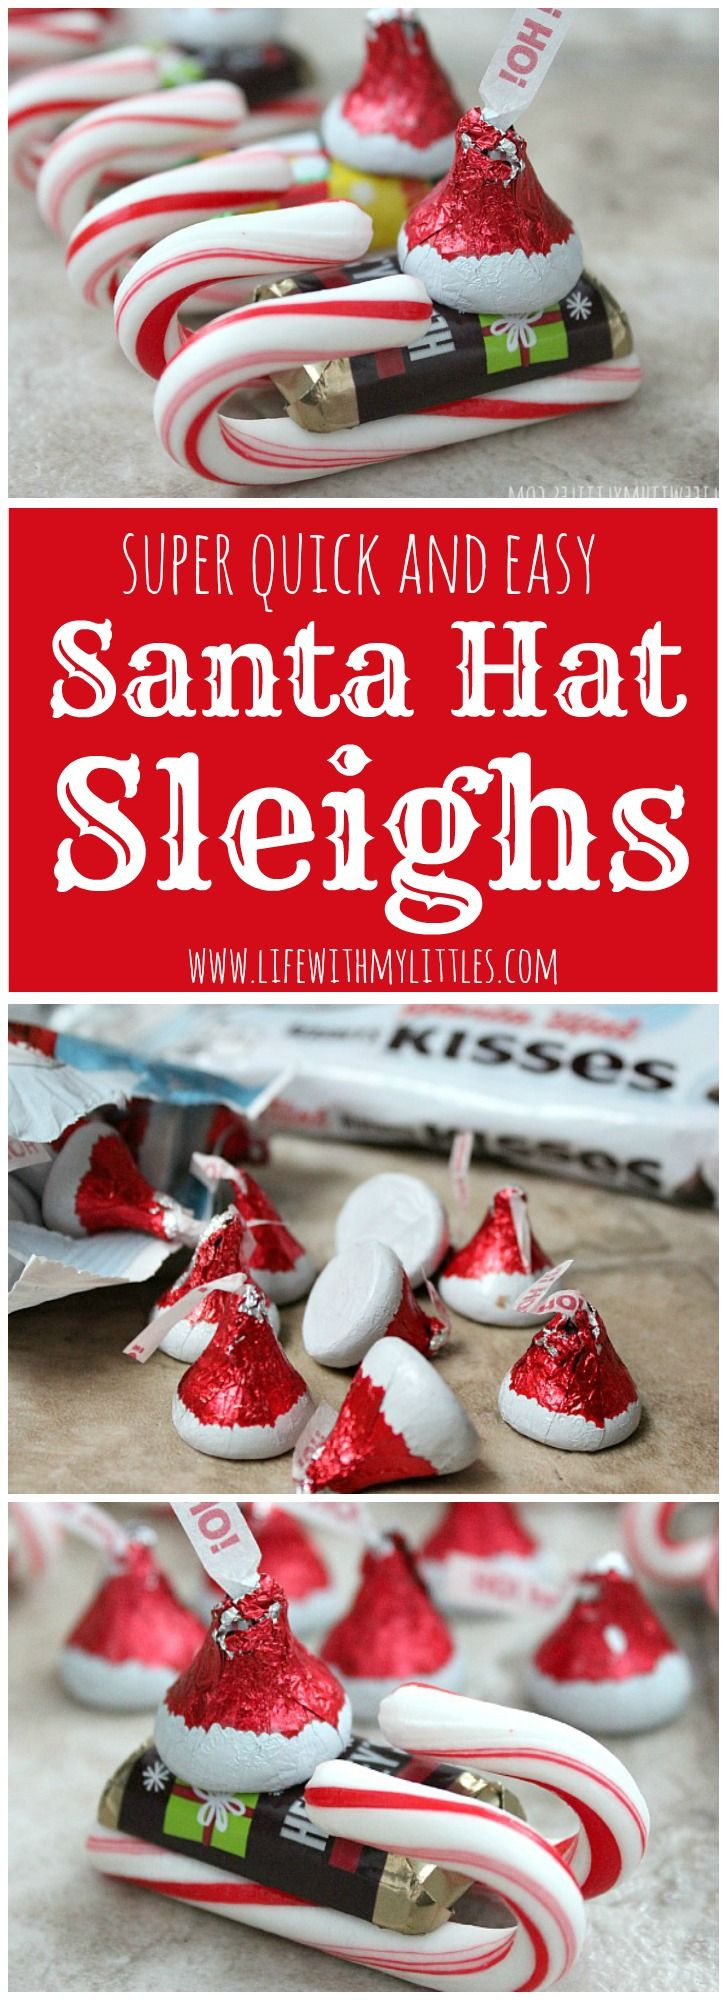 Best ideas about Crafts For Christmas Gifts . Save or Pin Best 25 Candy crafts ideas on Pinterest Now.